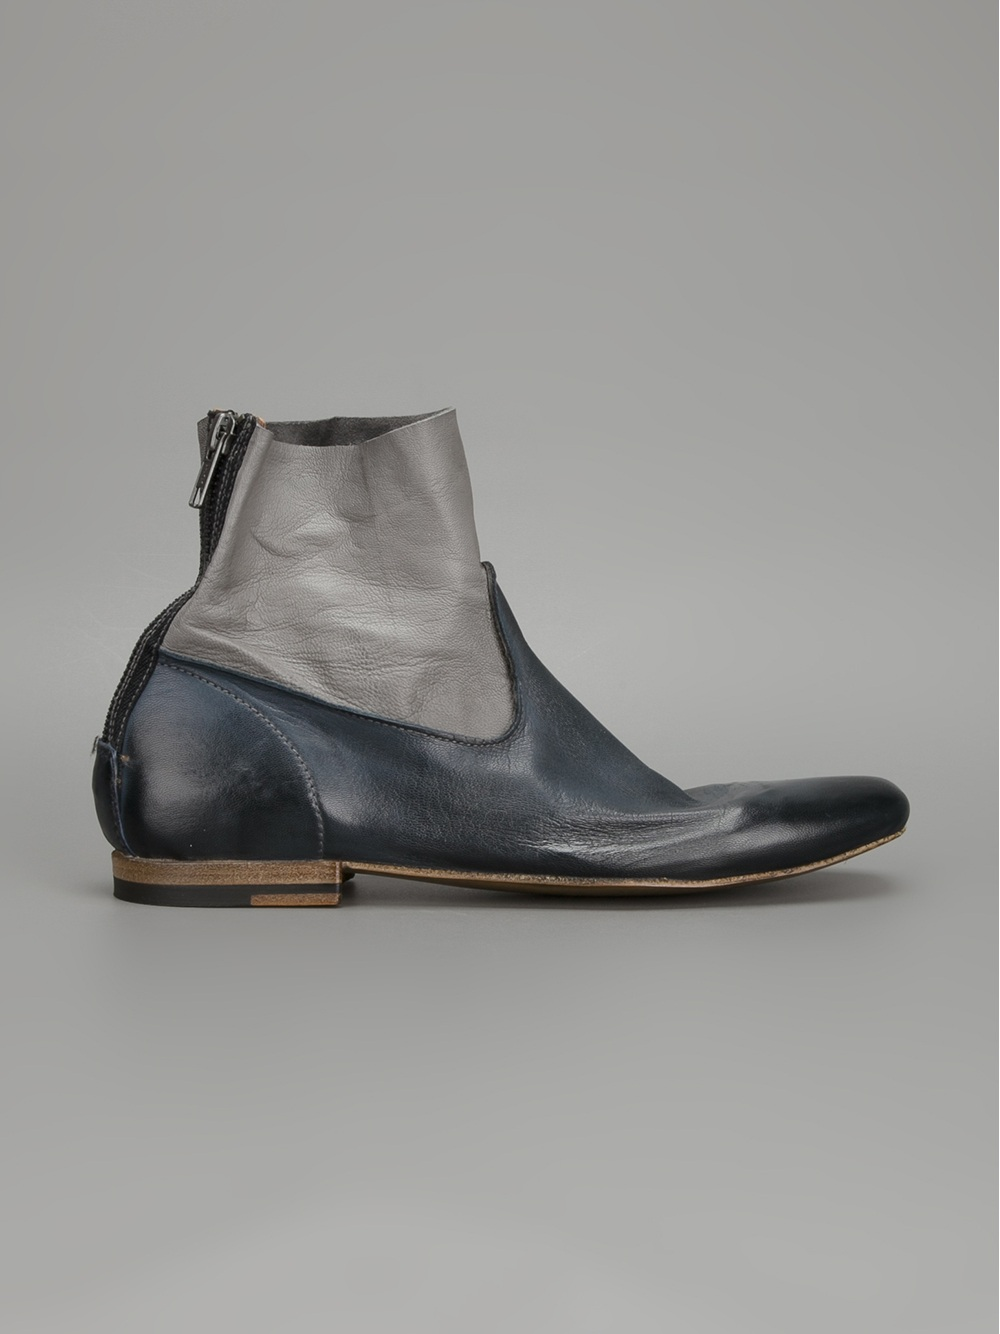 Silvano Sassetti Ankle boots wRBjtcooM